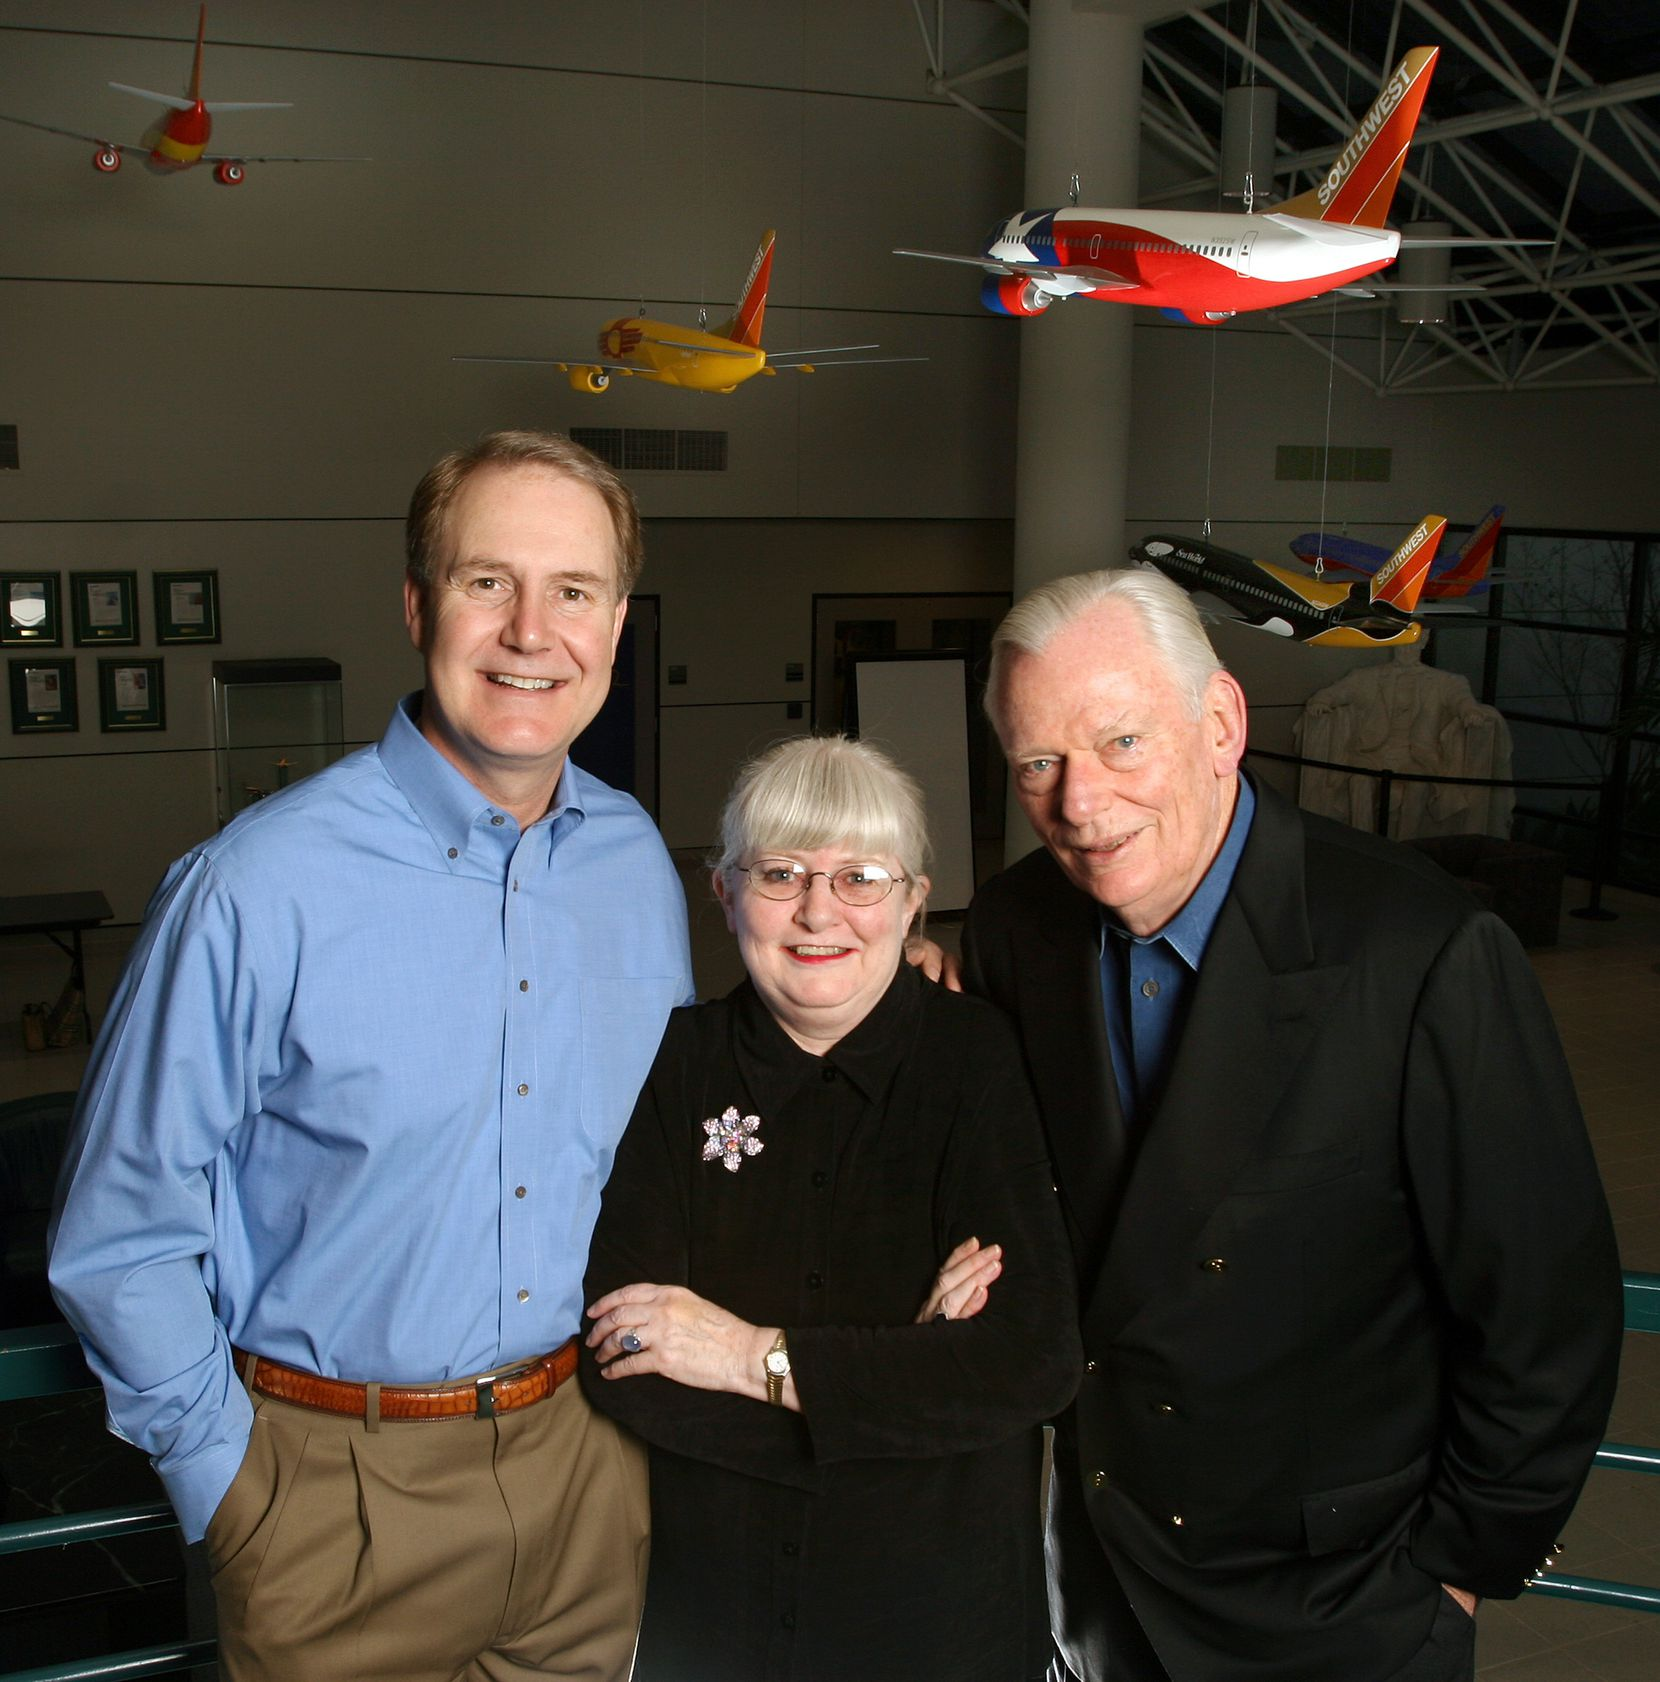 From left: In 2008, Southwest Airlines' Gary Kelly posed in the lobby of the company's headquarters in Dallas with then-president Colleen Barrett and chairman Herb Kelleher. Kelleher died in 2019.